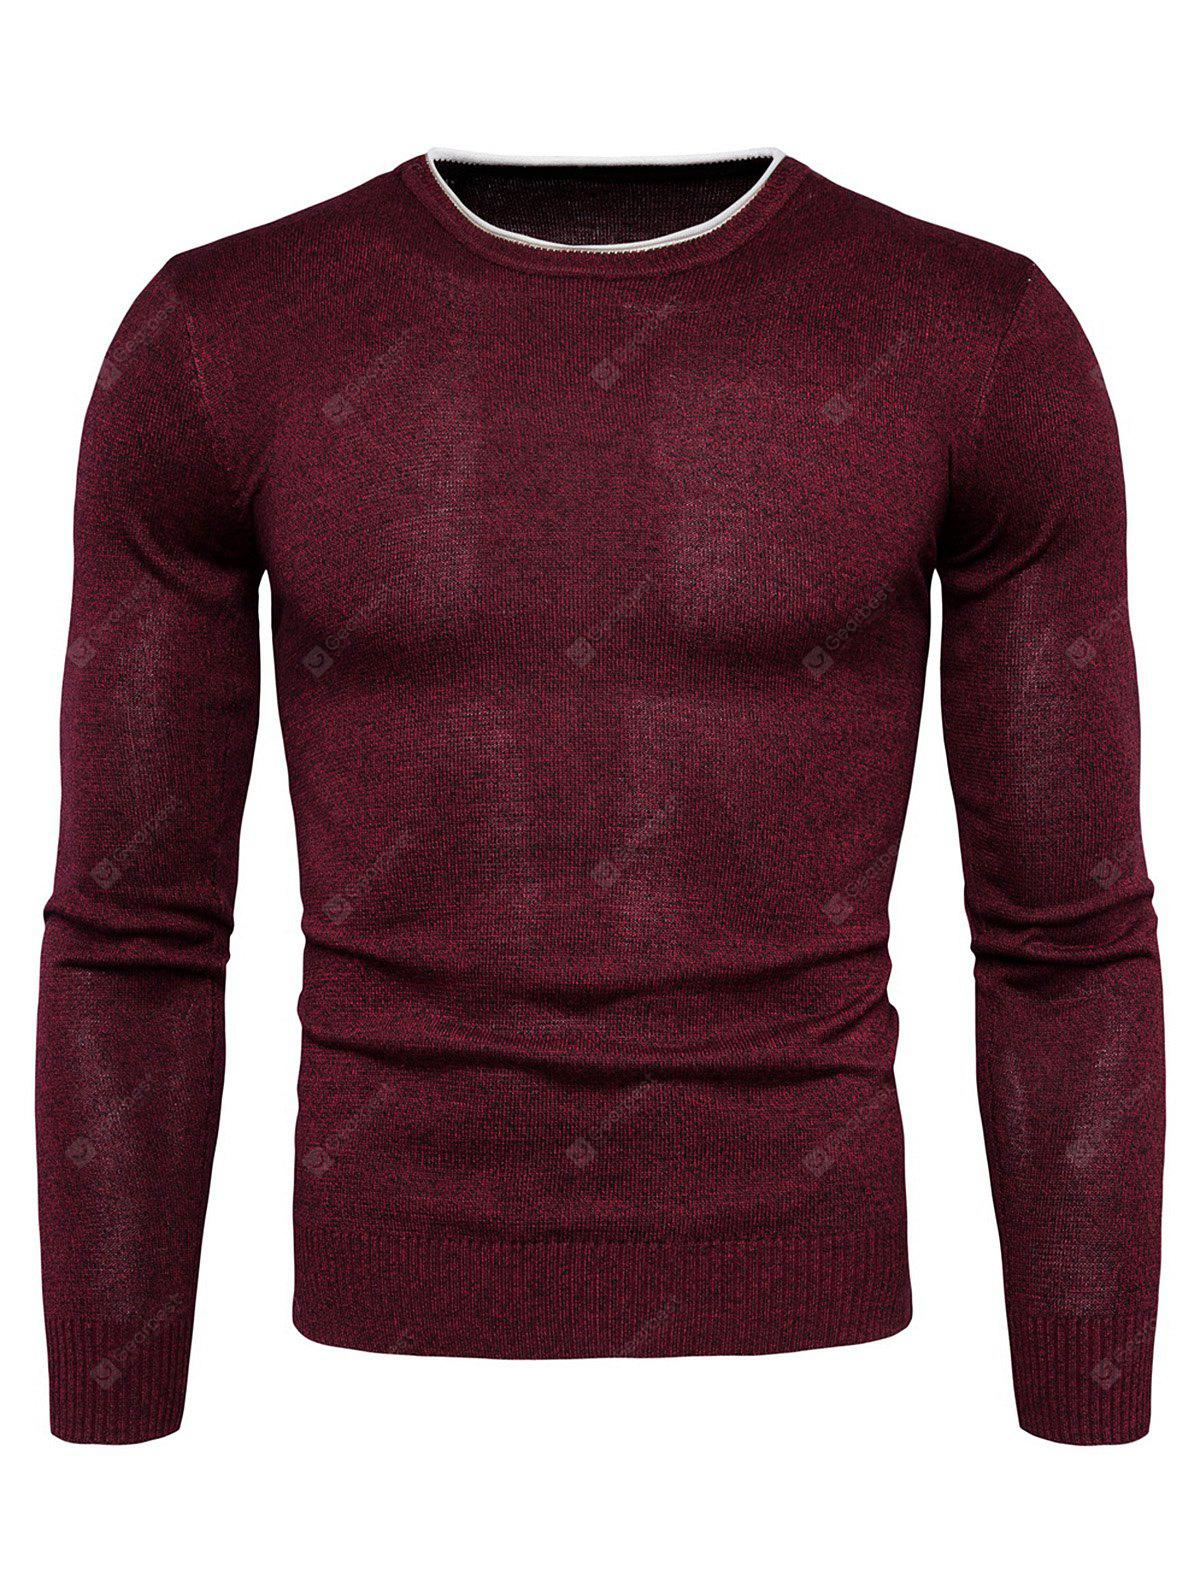 Warm Round Neck Long Sleeves Sweater for Men